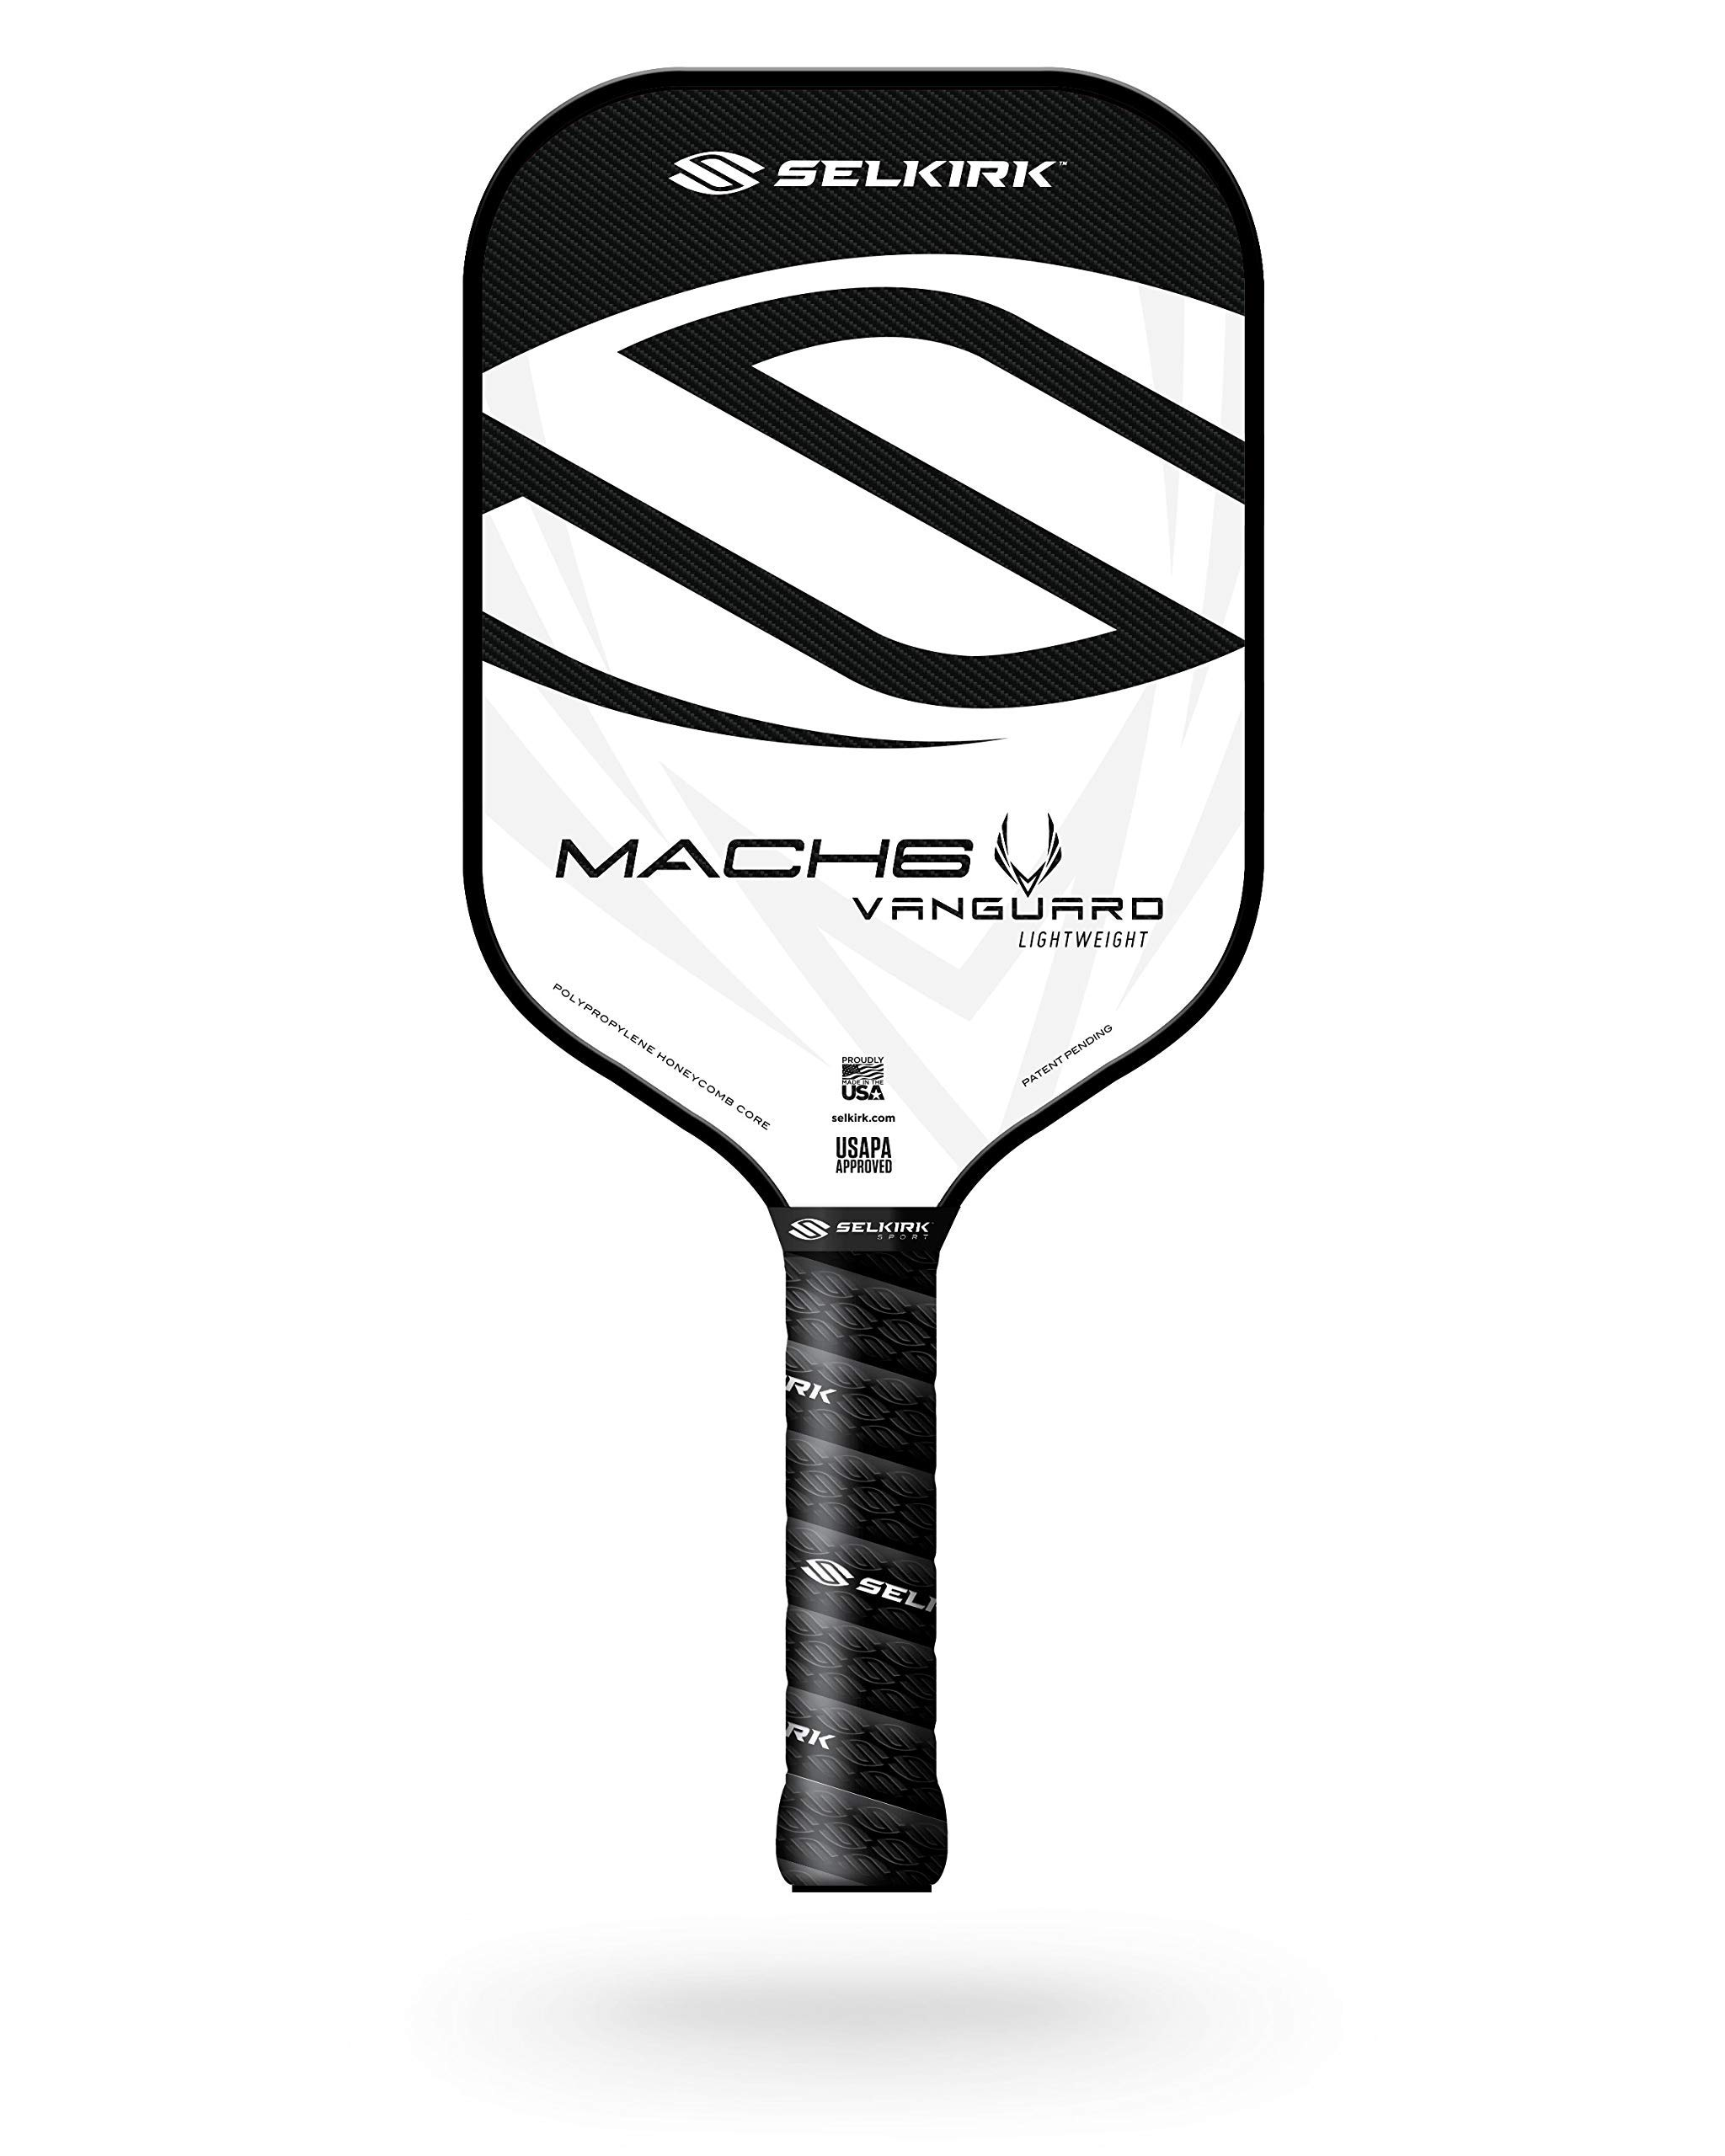 Selkirk Vanguard Hybrid Pickleball Paddle   Carbon Fiber Pickleball Paddle with a Polypropylene X5 Core   Pickleball Rackets Made in The USA  